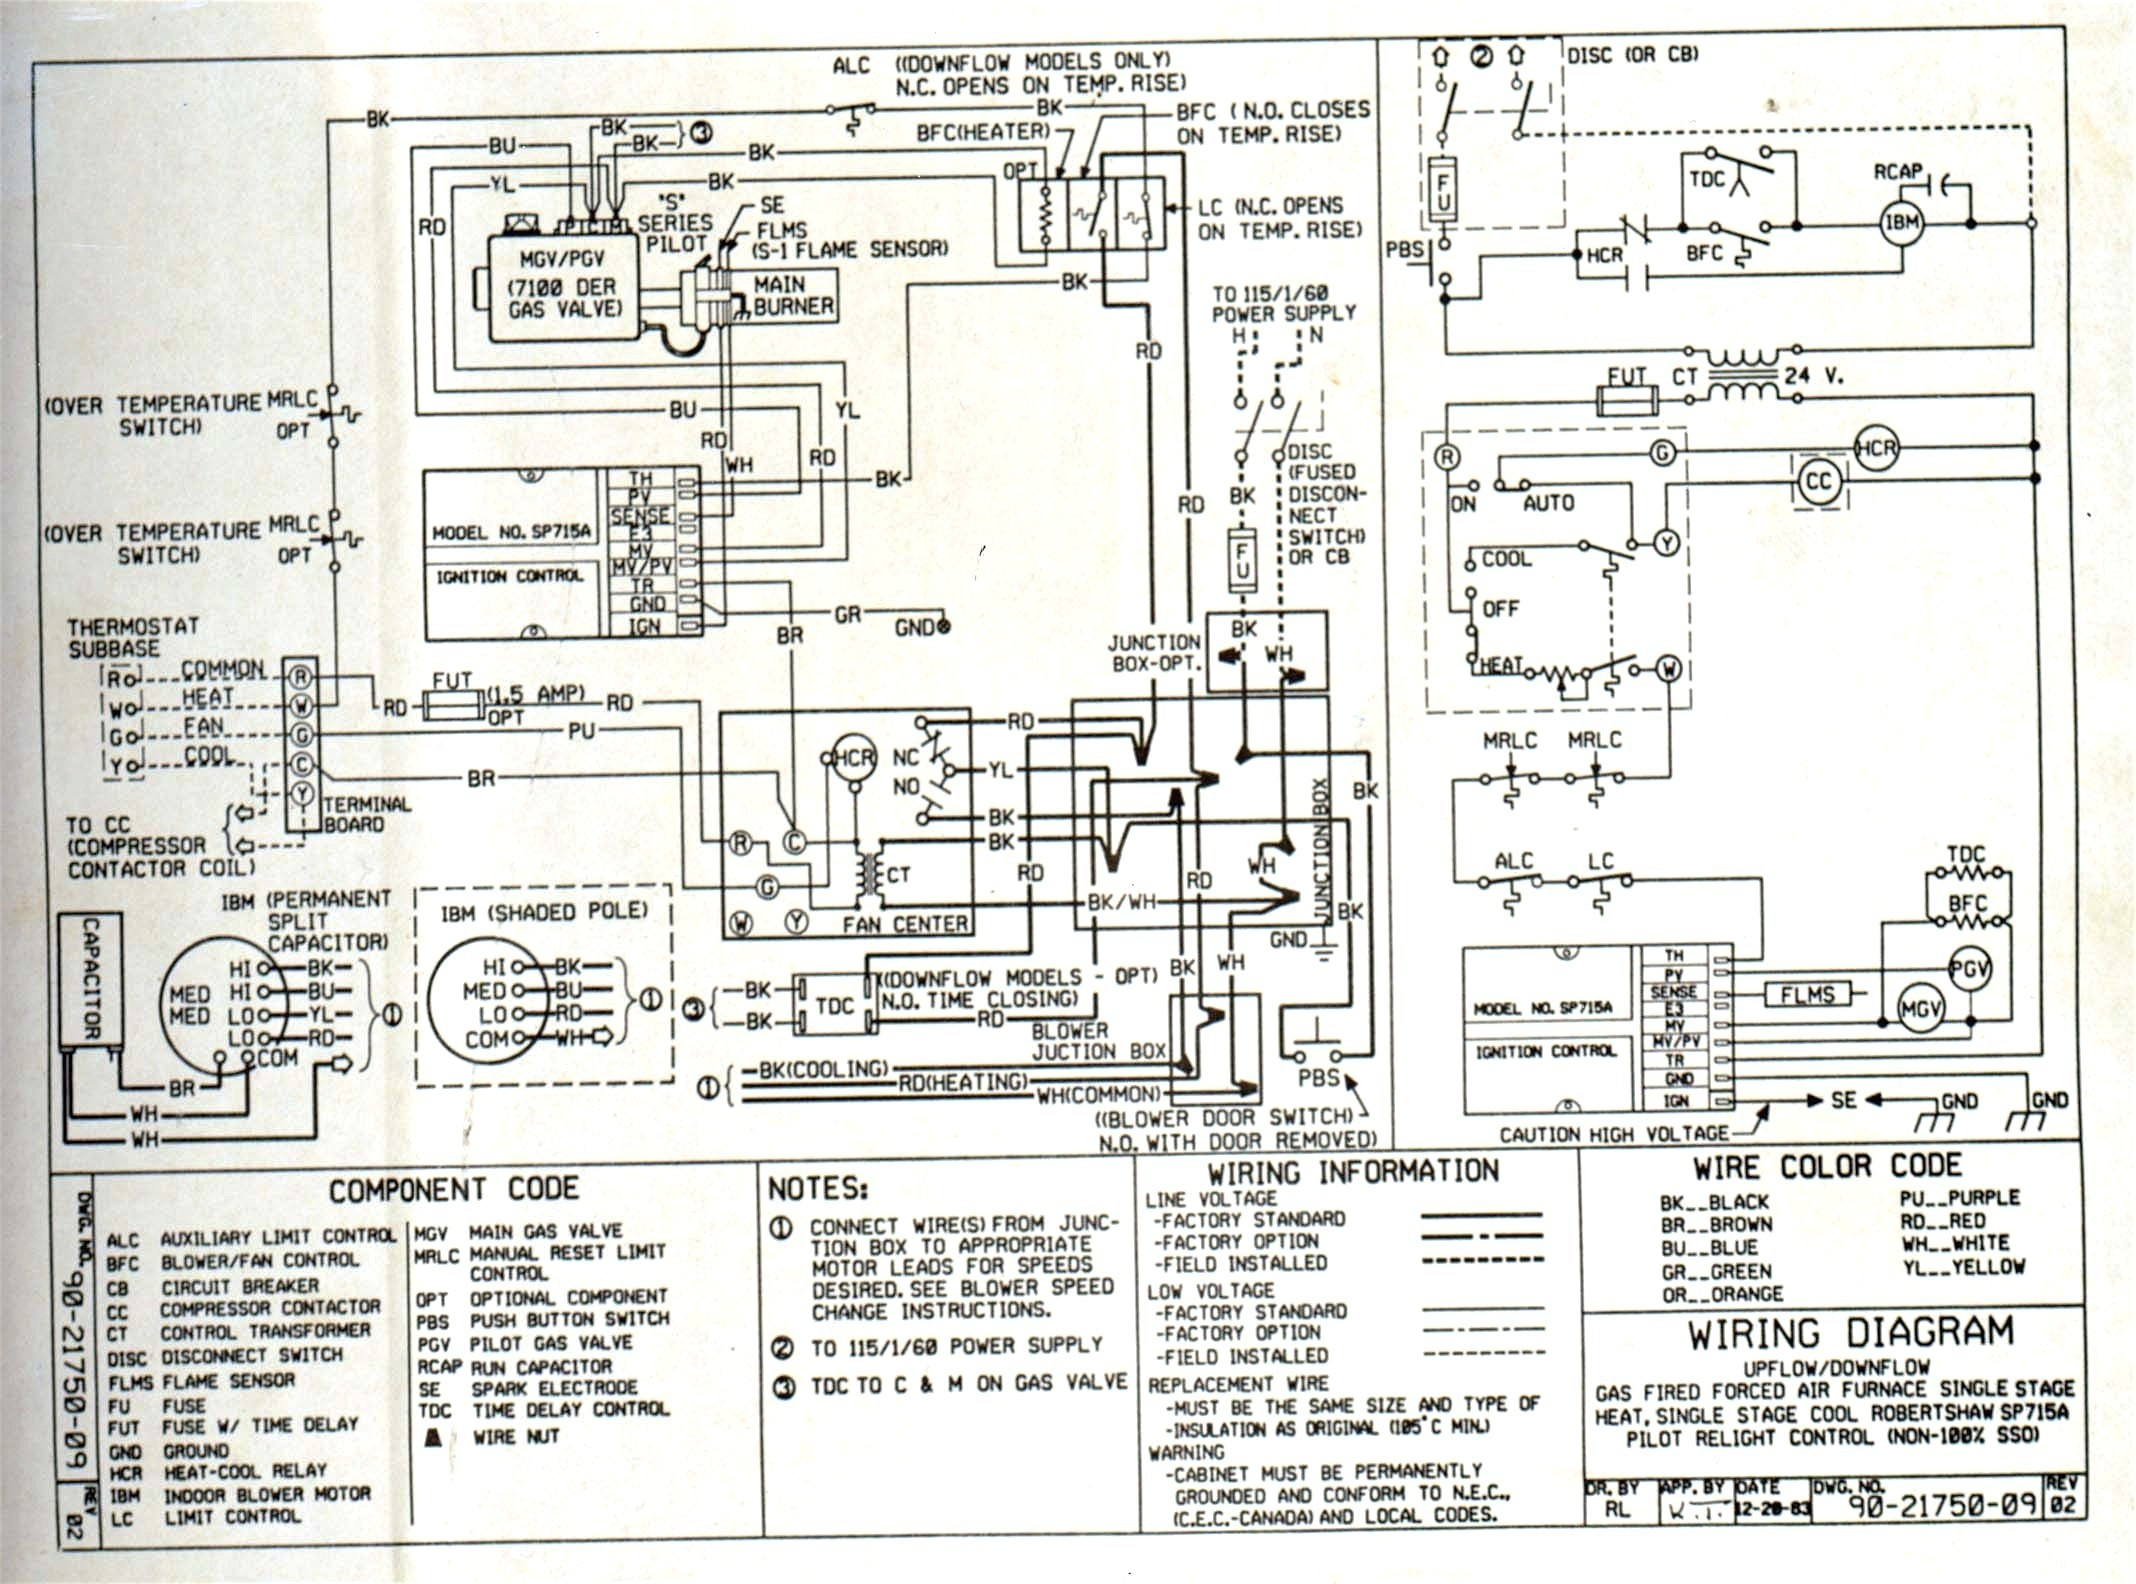 air conditioner wiring diagram picture Download-Wiring Diagram Air Conditioning pressor Fresh Wiring Diagram Ac Pressor New Mcquay Air Conditioner Wiring 4-t